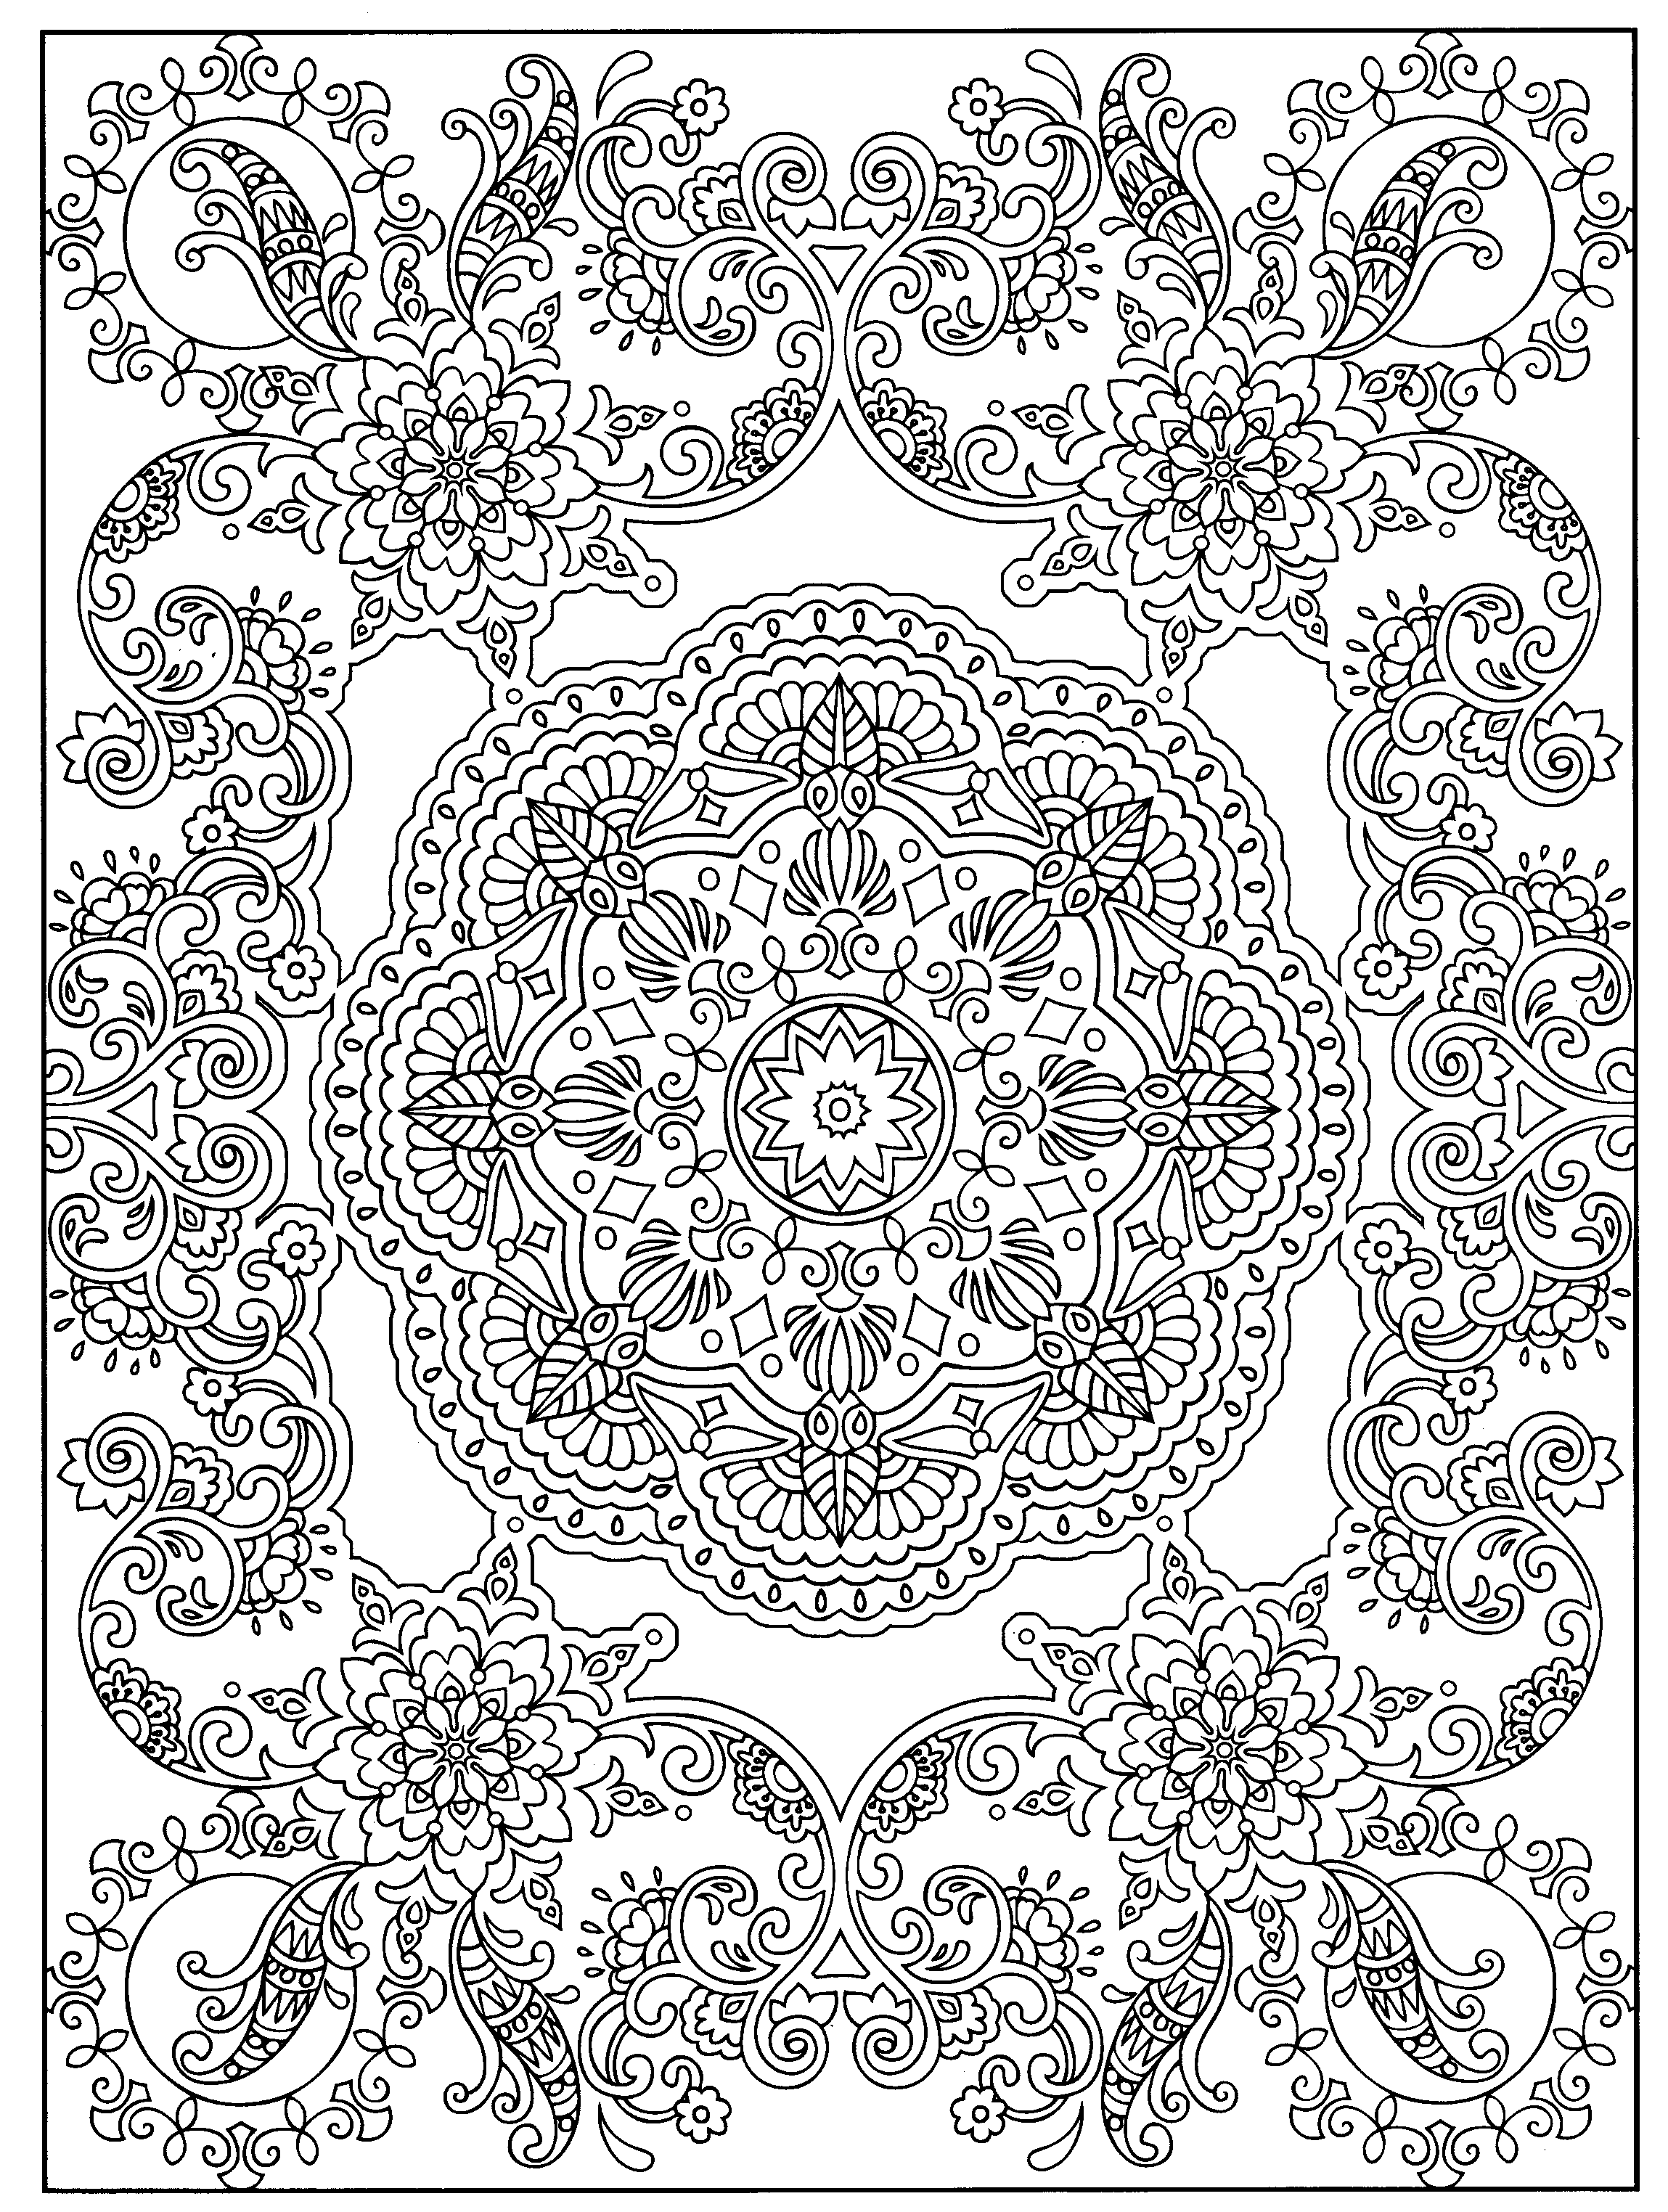 mehndi coloring pages mehndi flower pattern in form of heart for henna drawing pages mehndi coloring